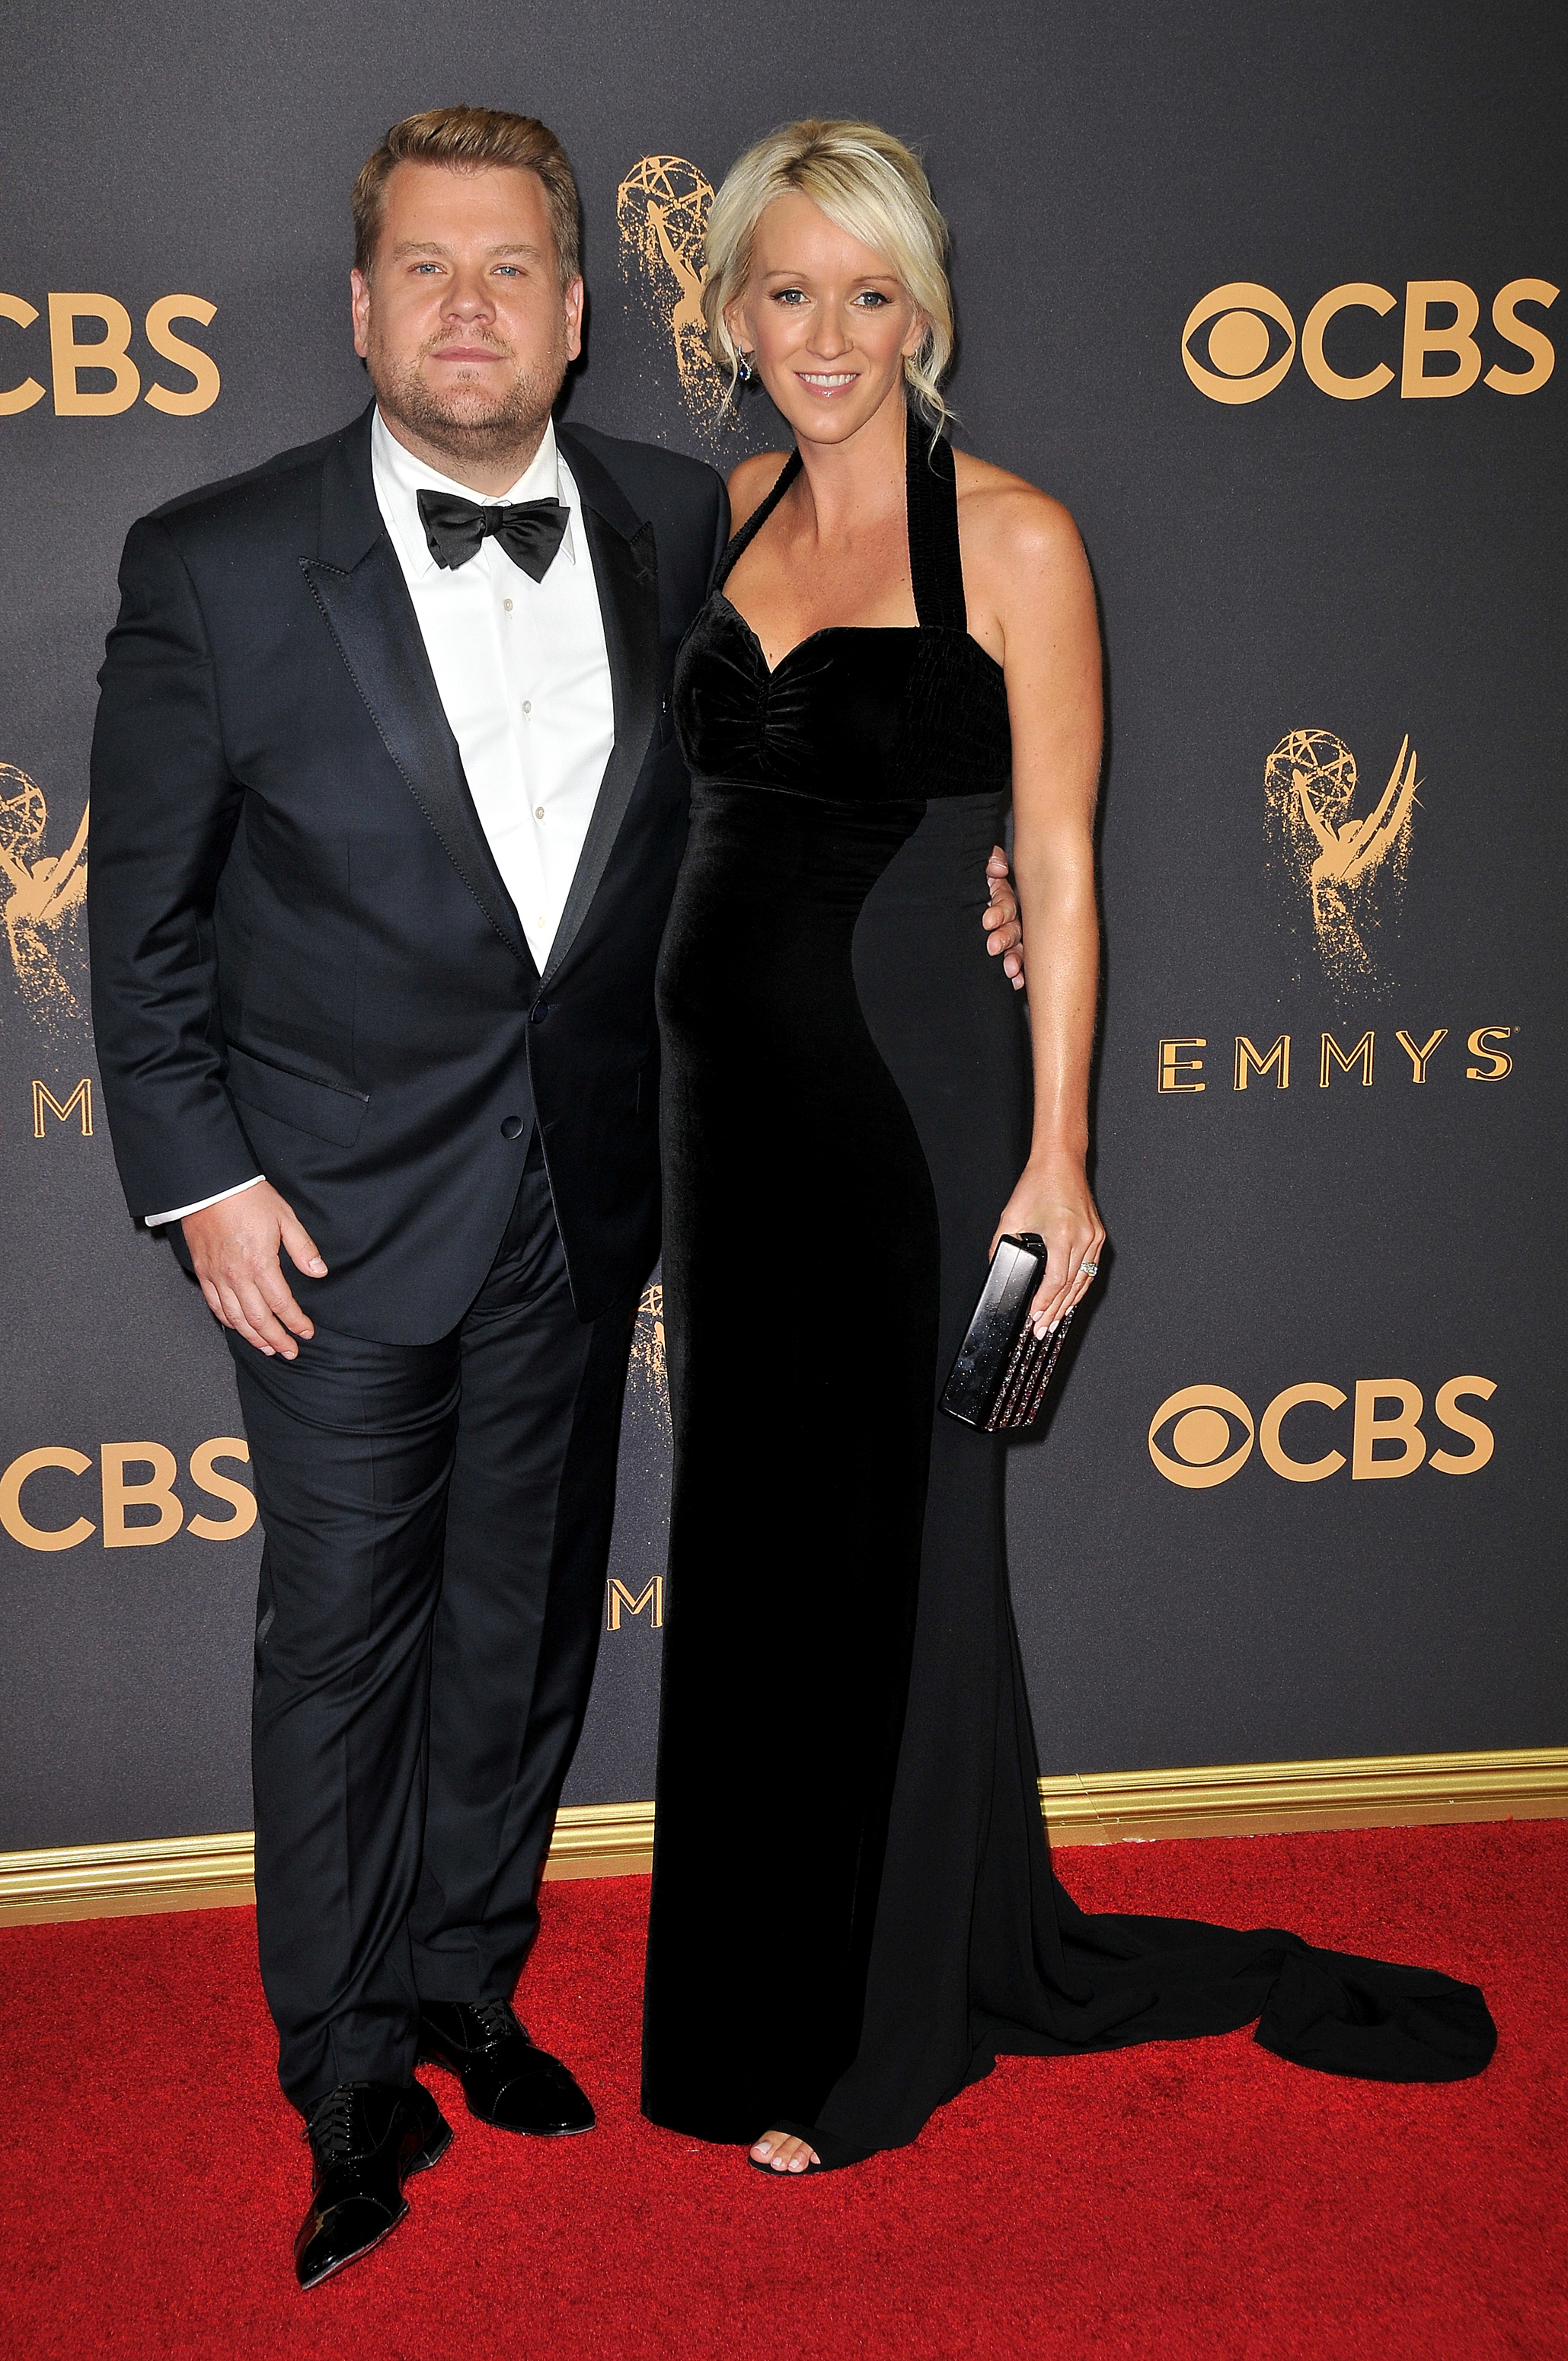 James Corden & His Wife Julie